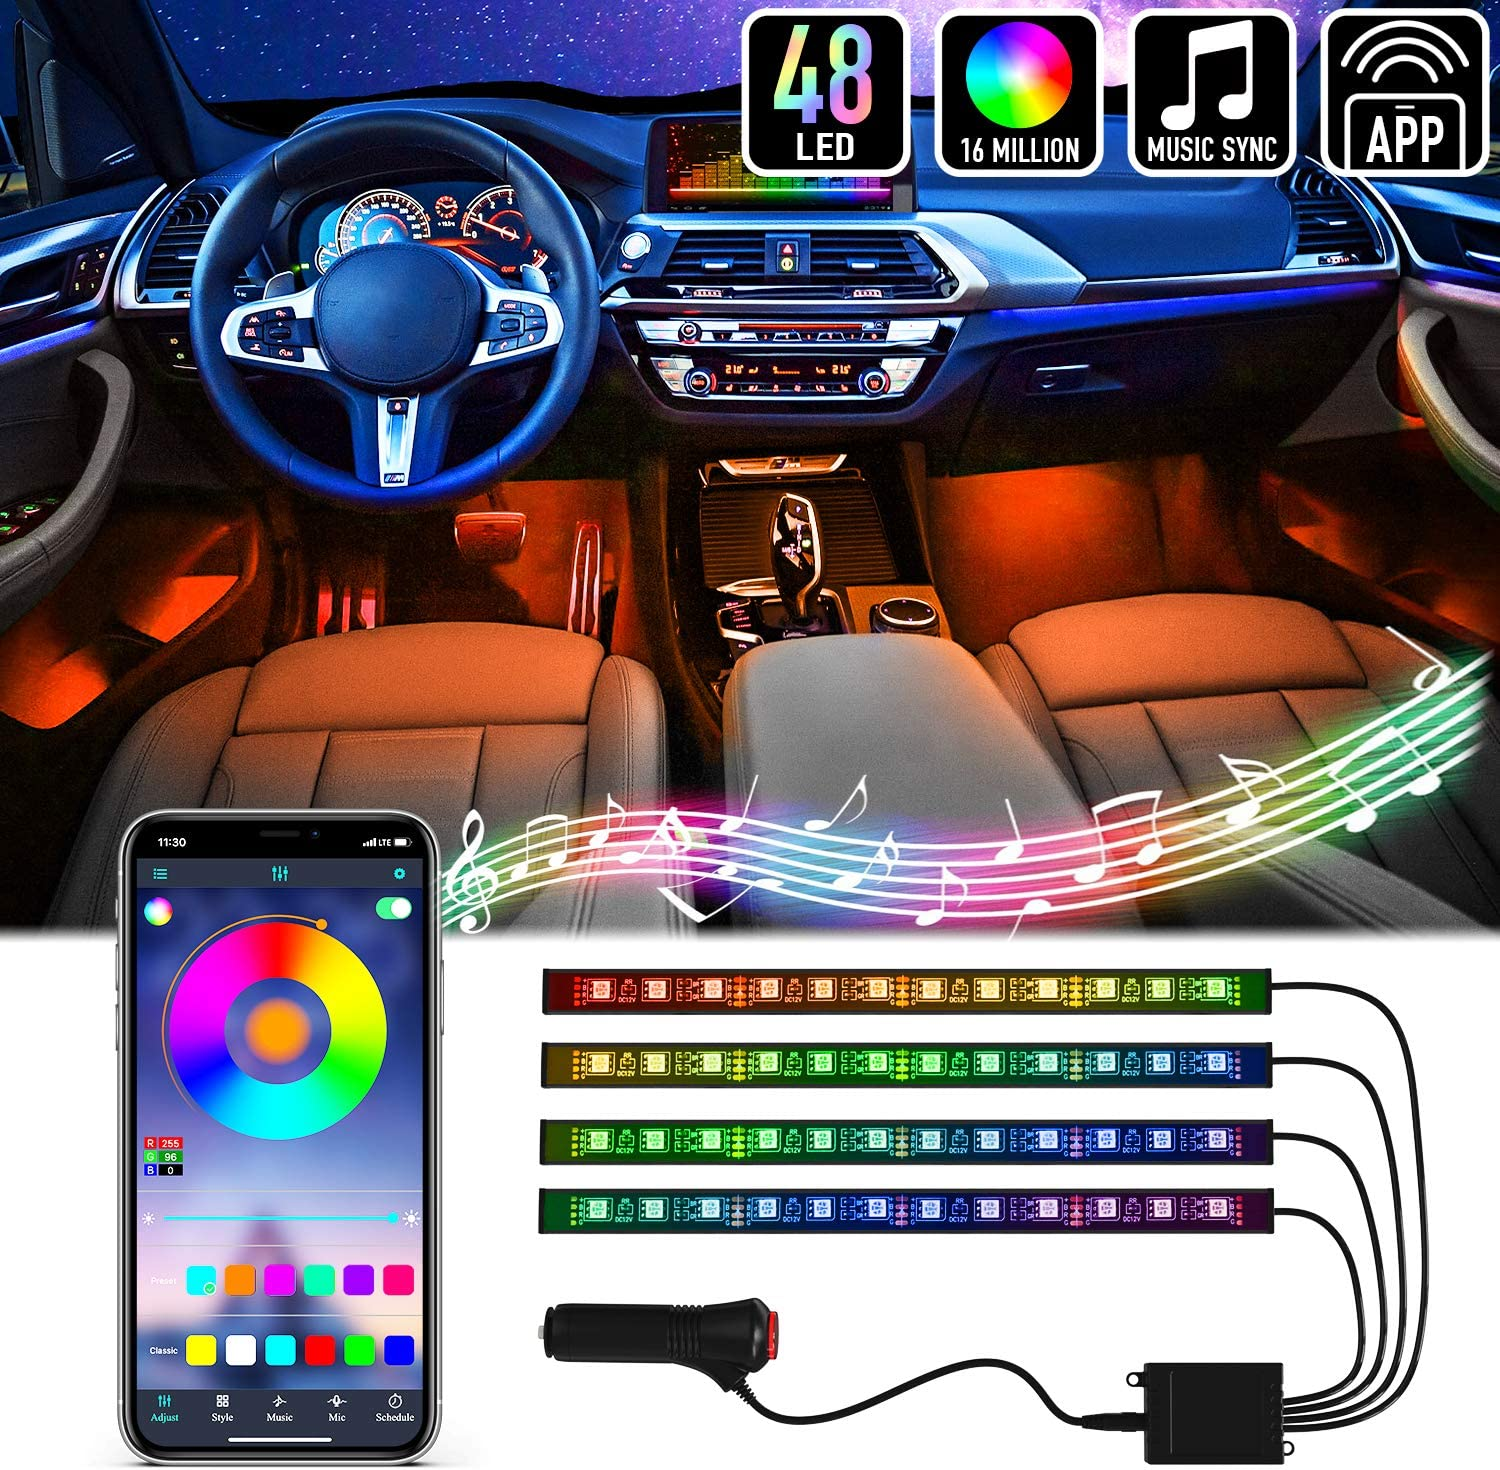 Mega Racer RGB Interior Car Lights - LED Strip Lights for Car, 48 LEDs Over 16 Million Colors, Music Sync App Controlled with iPhone Android Waterproof Under Dash Car Lighting Kit, Car Charger DC 12V